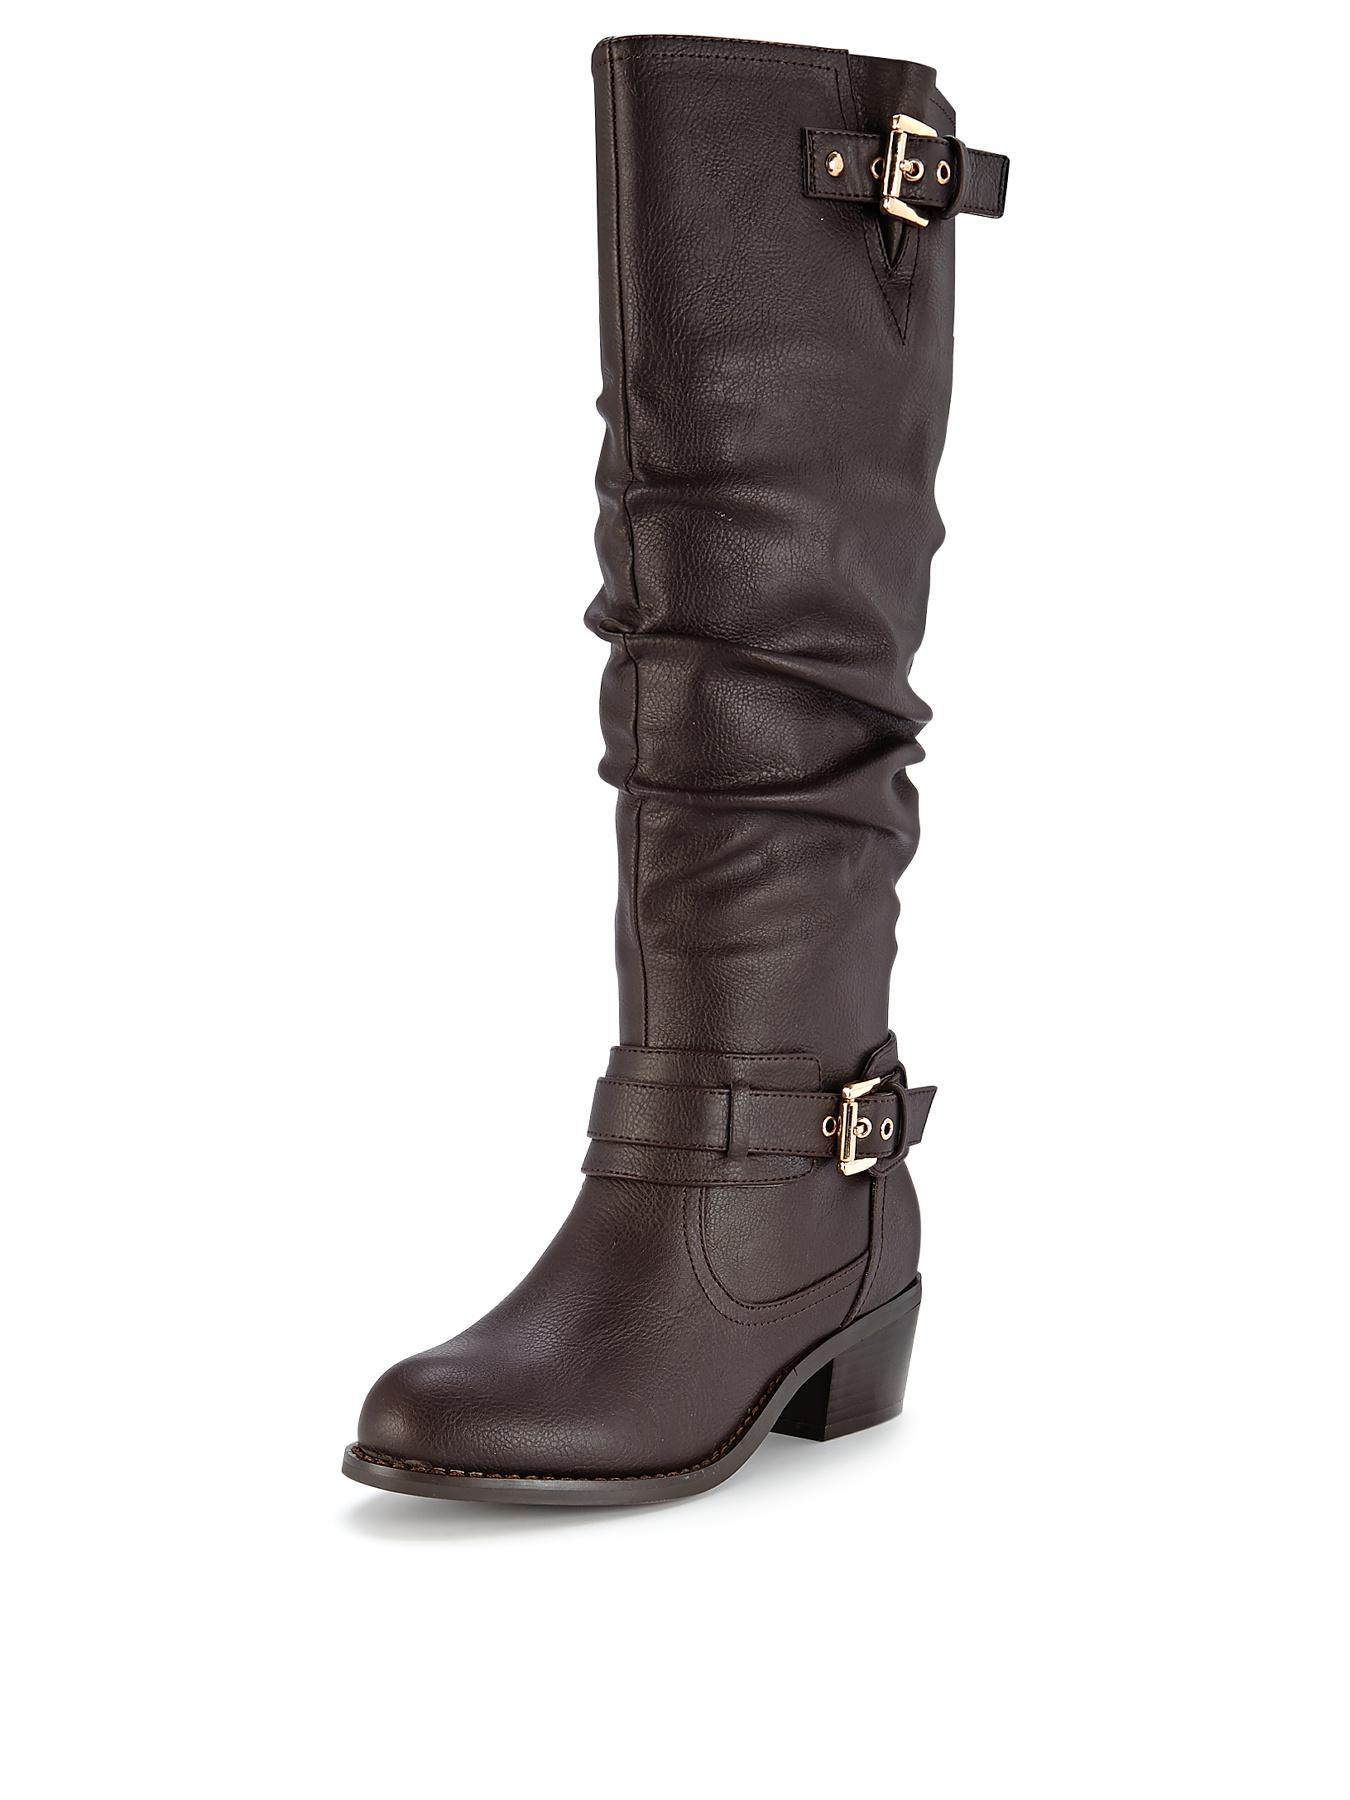 Shoe Box Tegan Double Buckle Mid Heel Calf Boots - Brown, Brown